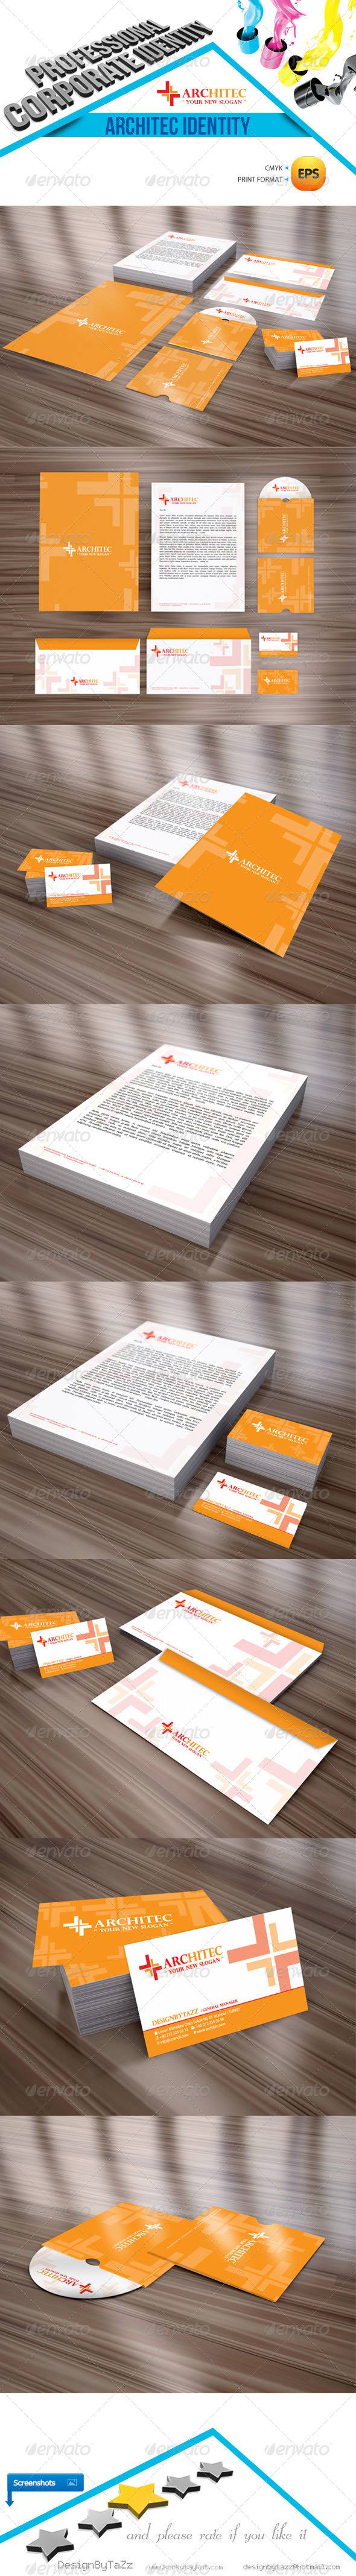 GraphicRiver Architec Corporate Identity Package 4399380